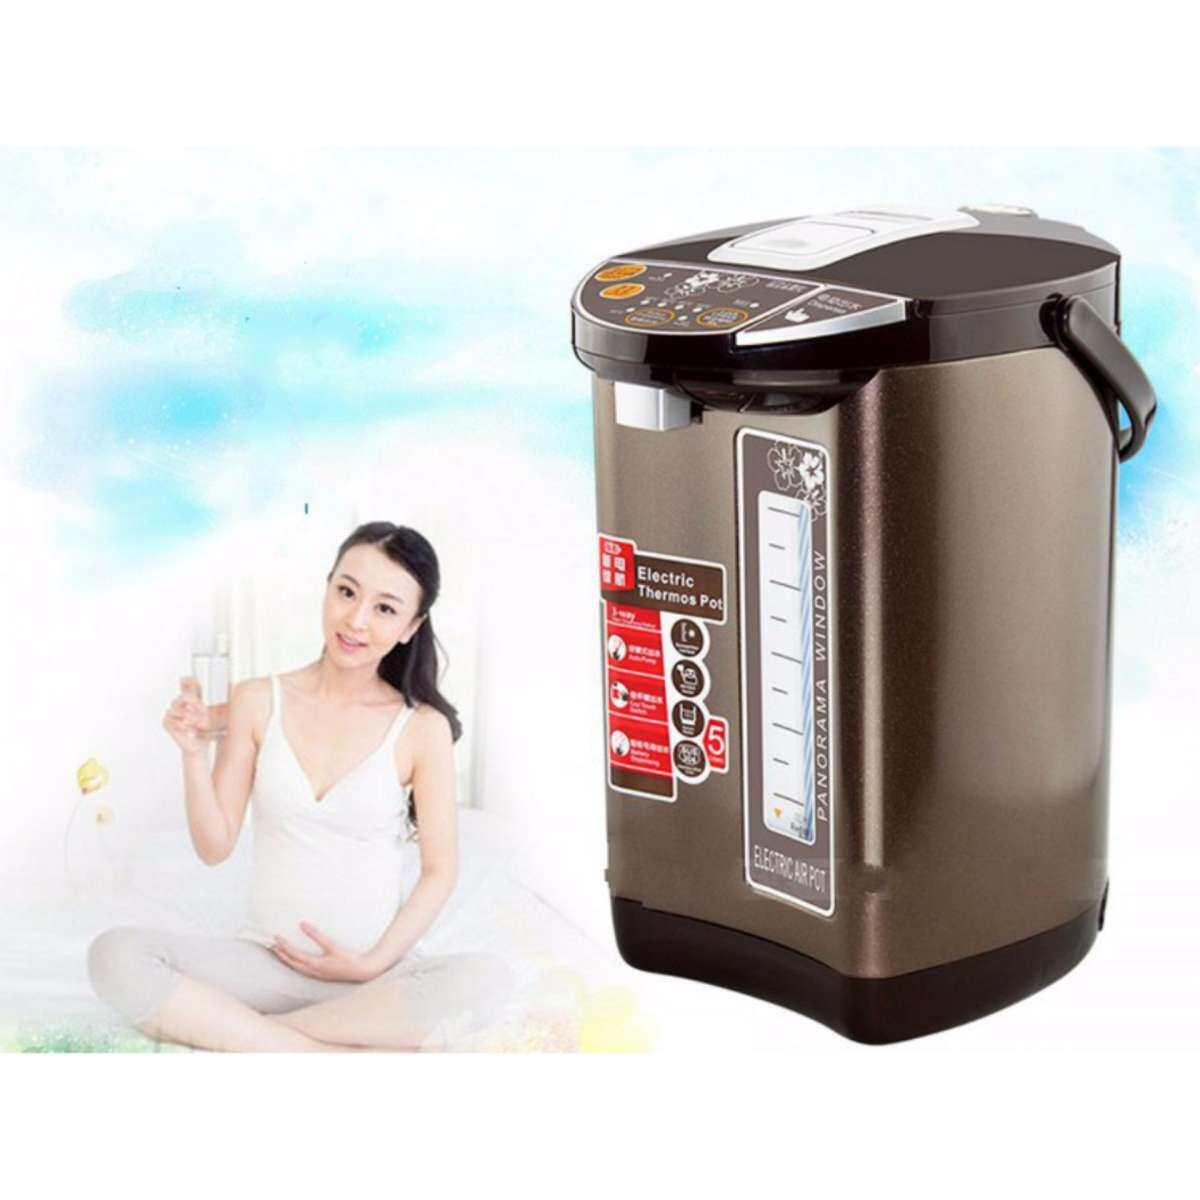 heat preservation of household 304 stainless steel water boiler 5 l double automatic electric kettle